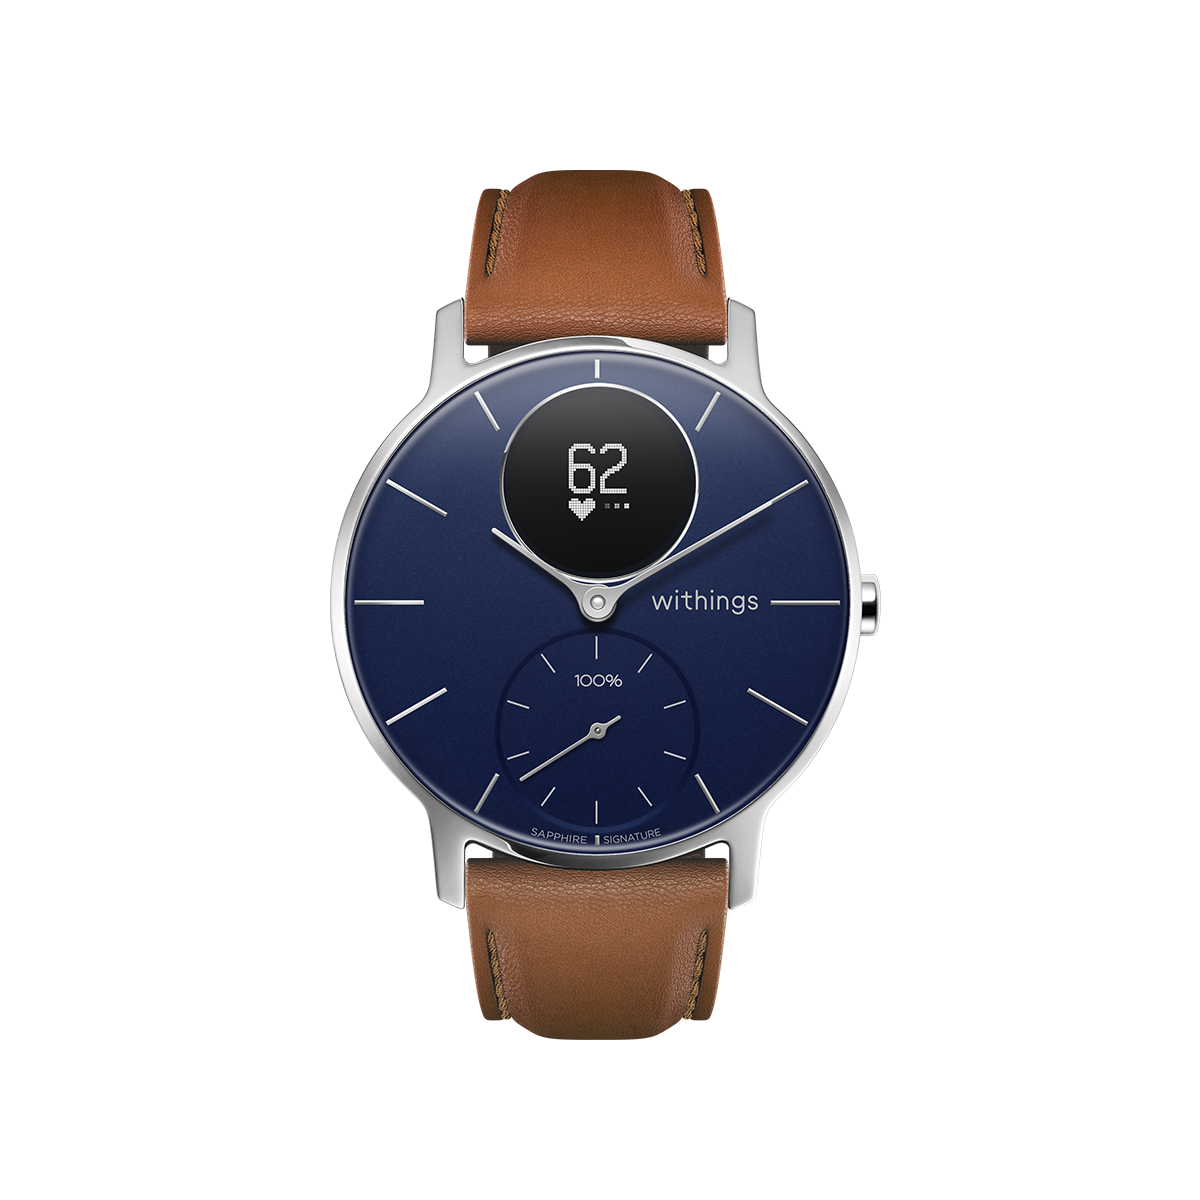 Withings Steel HR Sapphire Signature, 36mm, Blue & Silver - Hybrid Smartwatch - Heart rate & Smartphone notifications - Withings Official Store